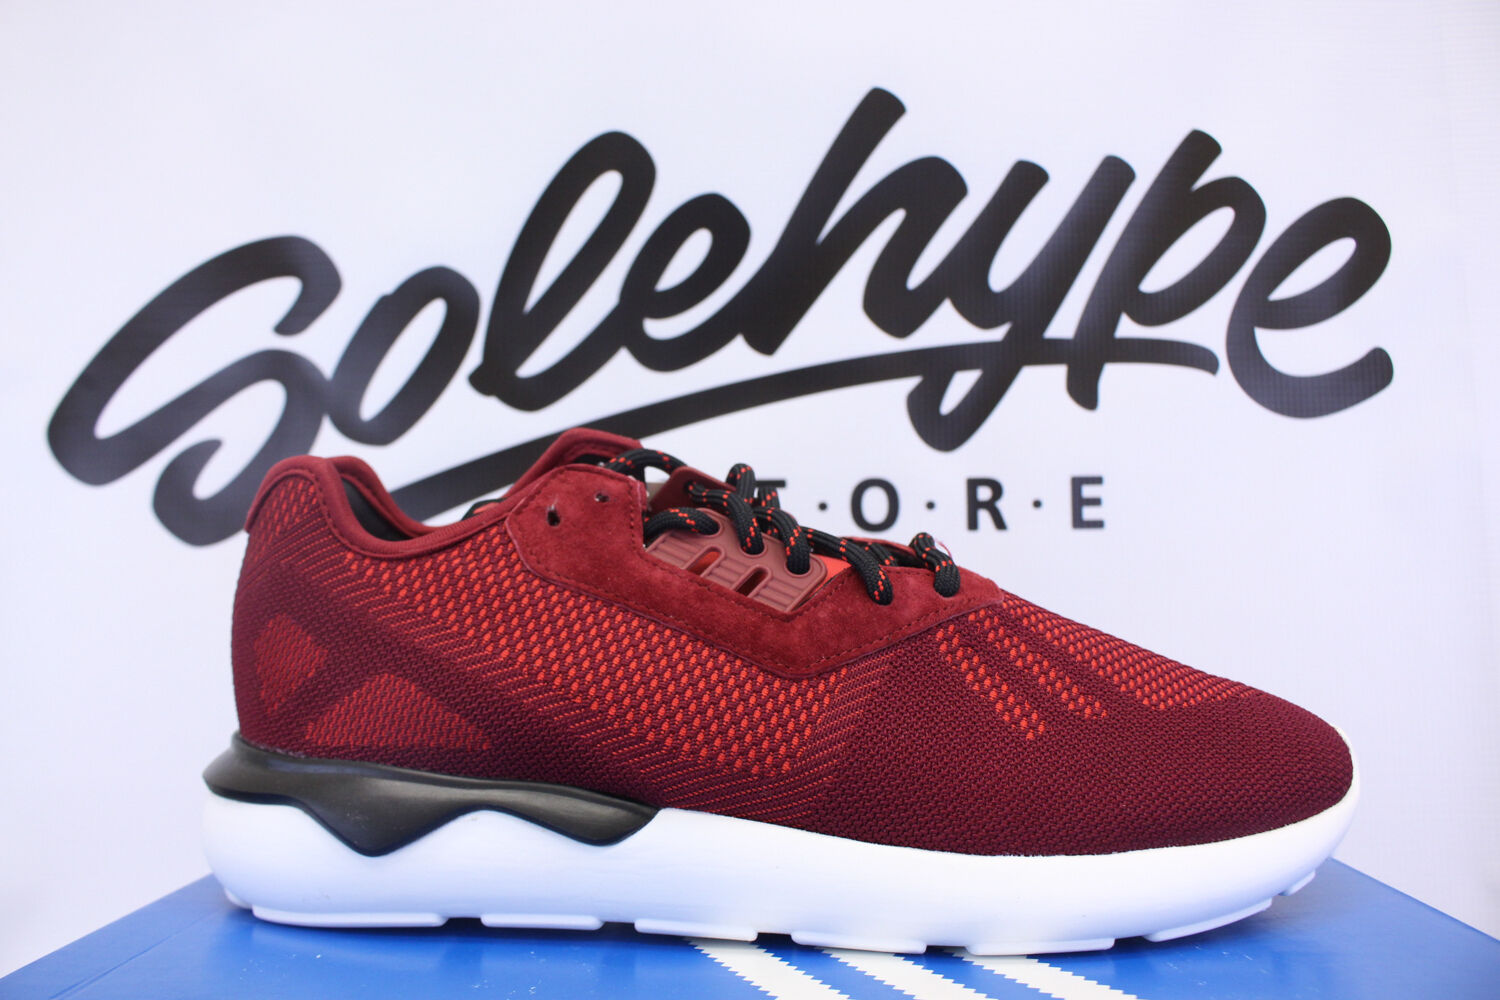 ADIDAS TUBULAR RUNNER WEAVE COLLEGIATE BURGUNDY RED BLACK WHITE S74812 SZ 9.5